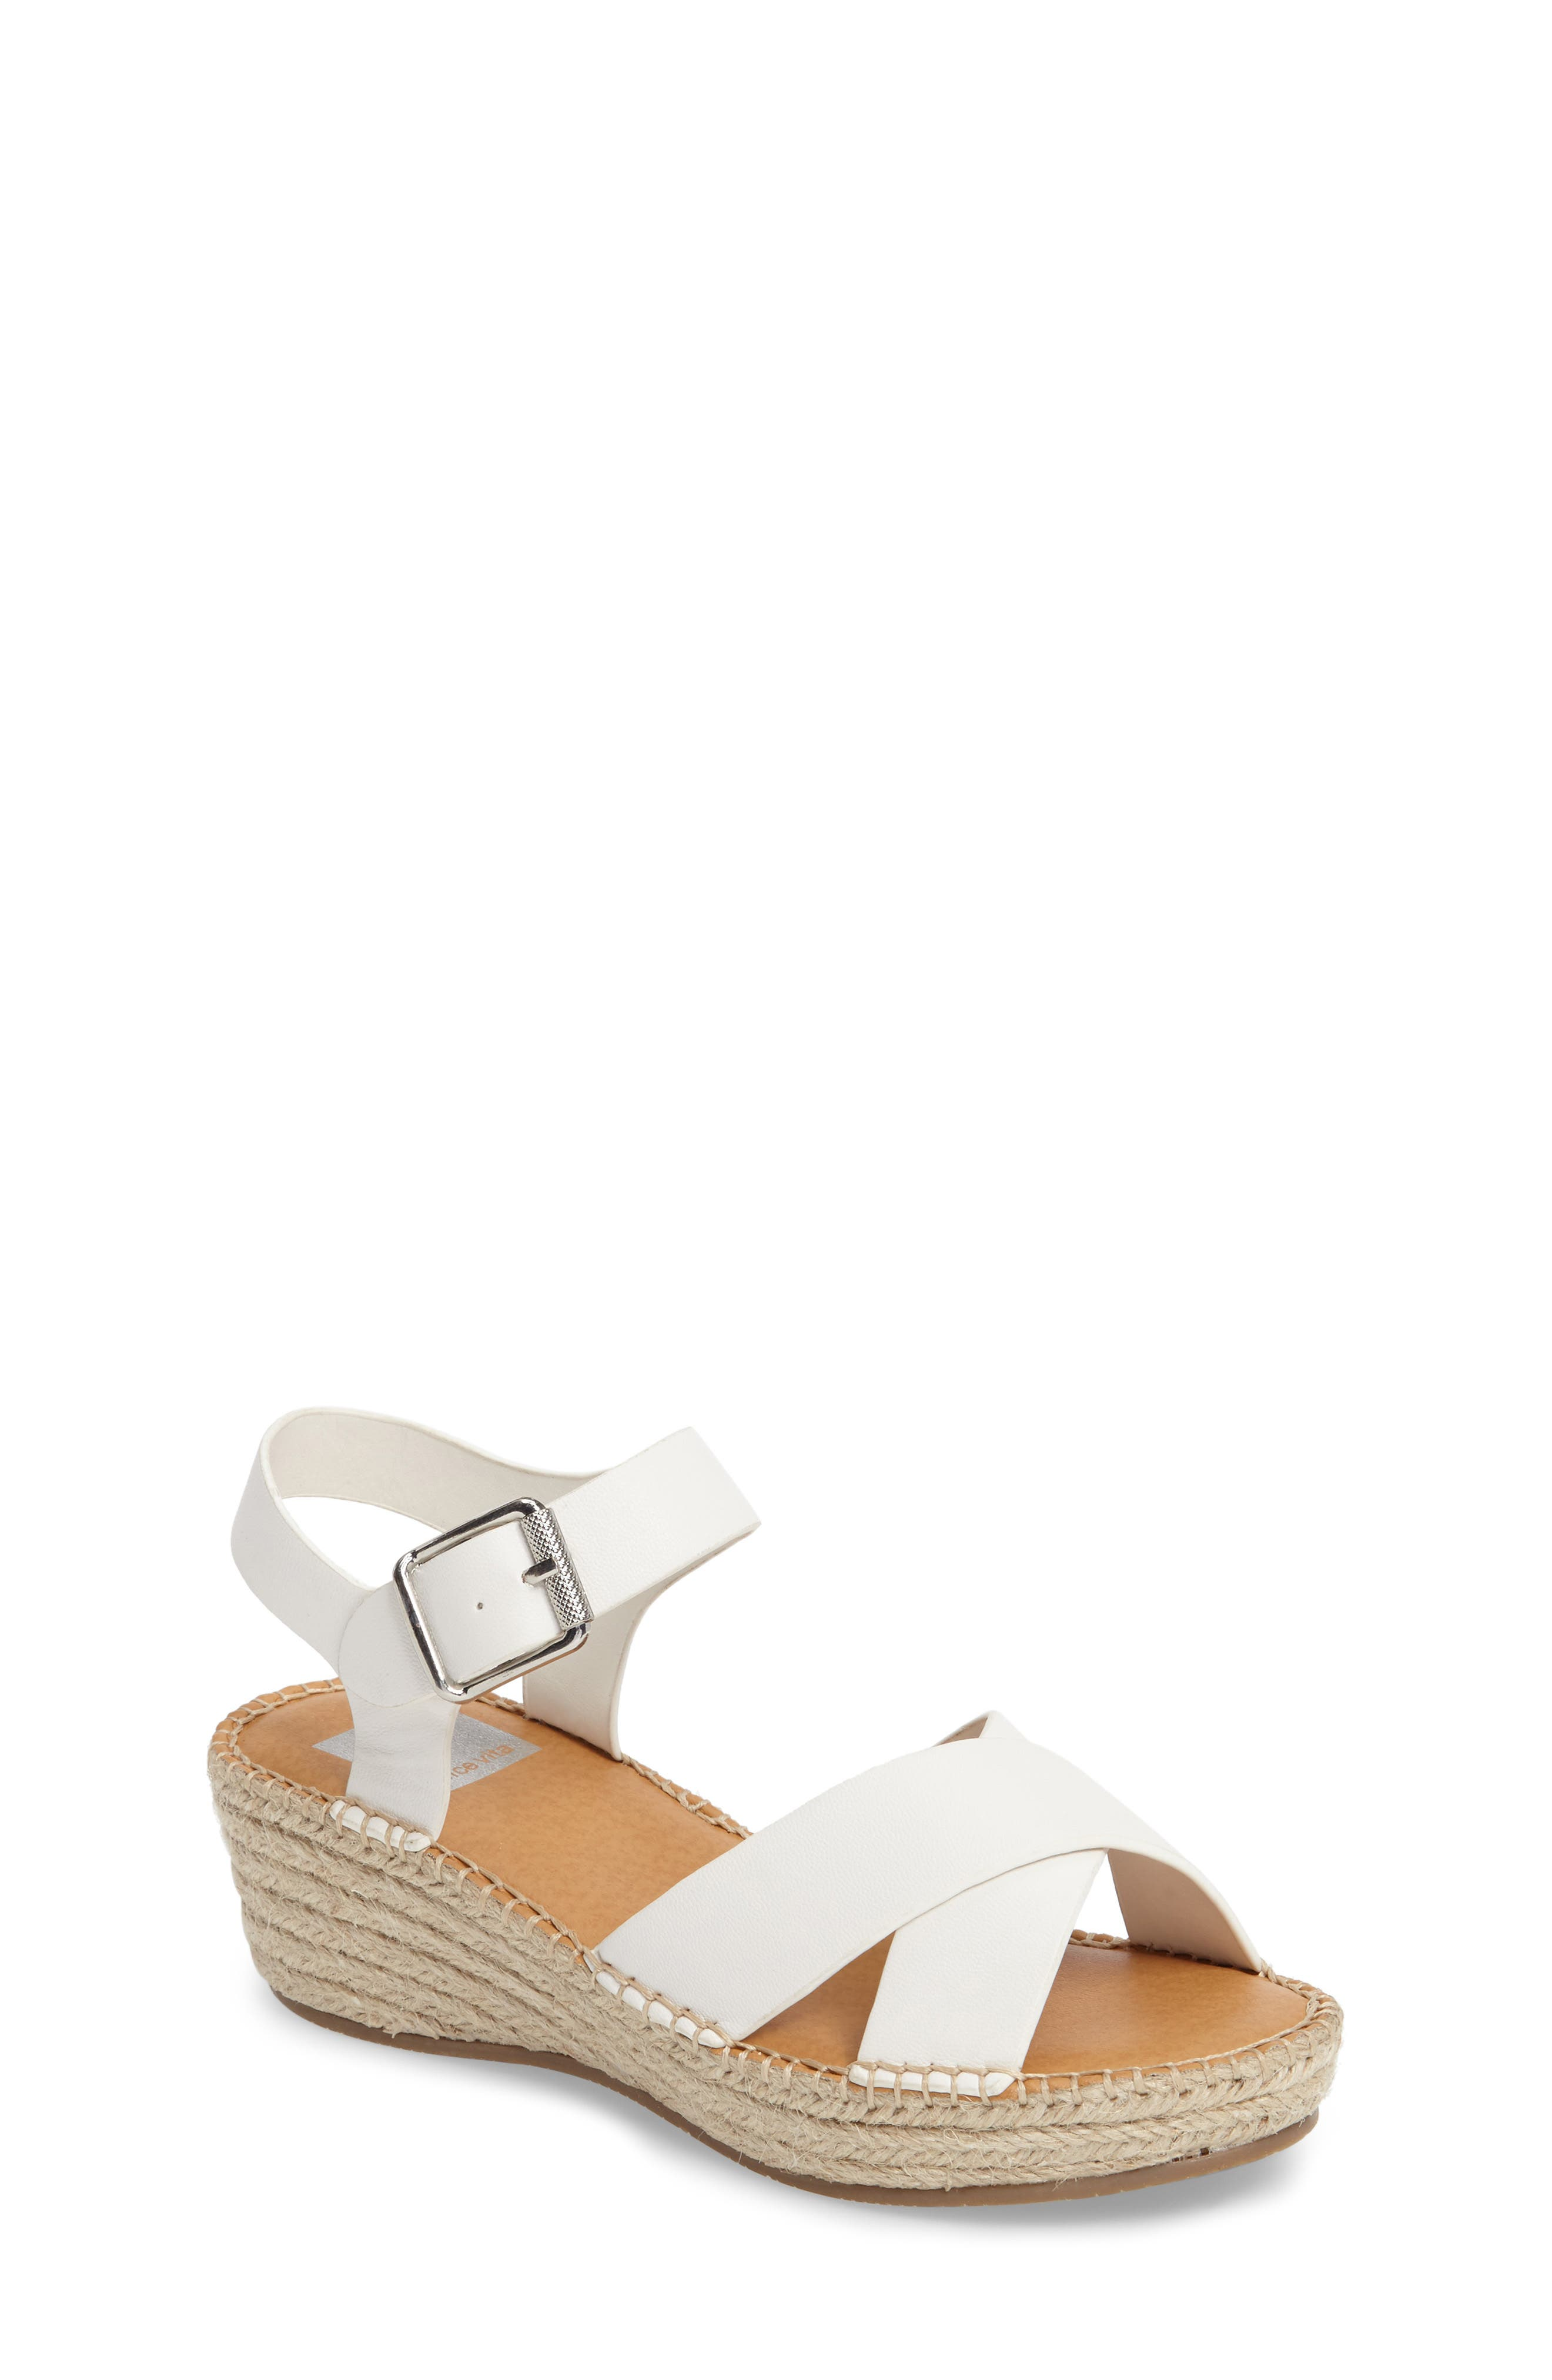 Dolce Vita Pamela Wedge Sandal (Toddler, Little Kid & Big Kid)